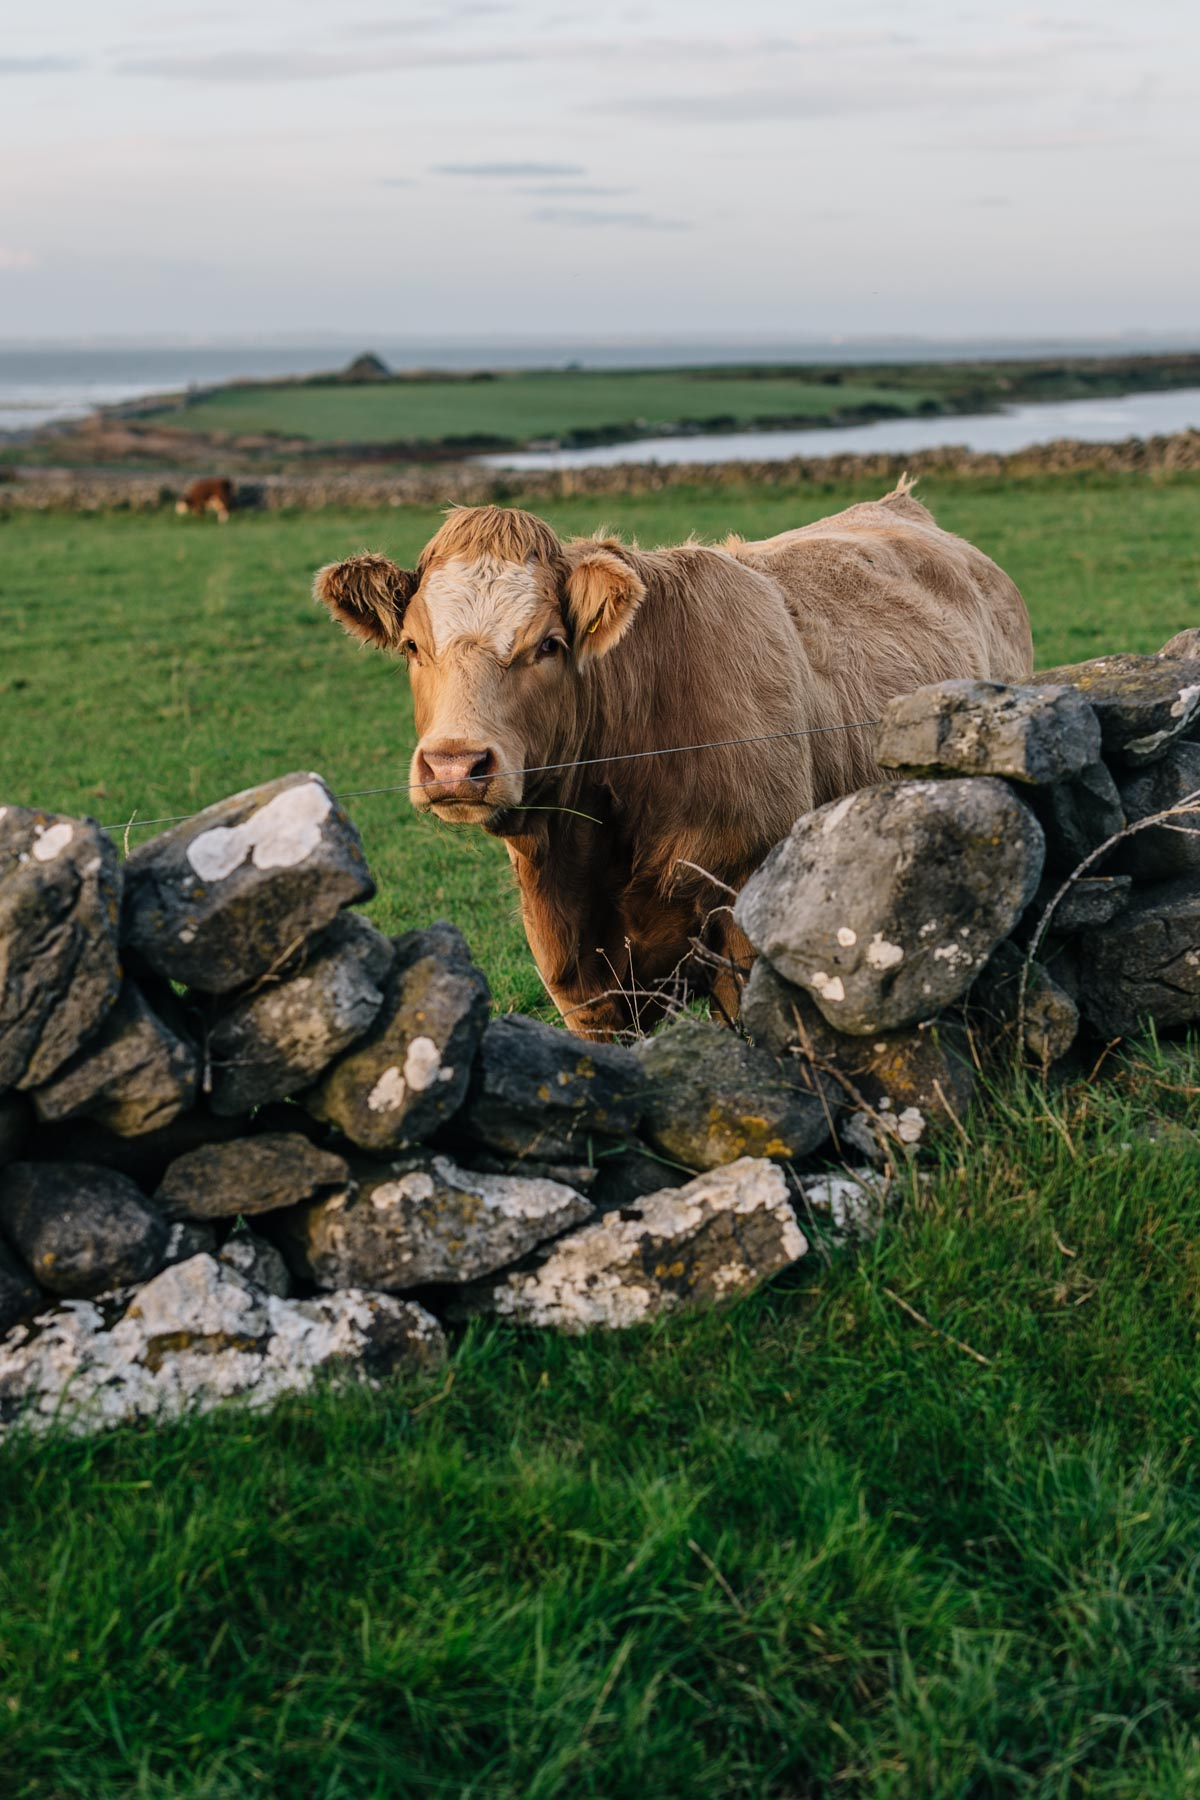 Cows in Ireland from Jess Ann Kirby's road trip on the Wild Atlantic Way